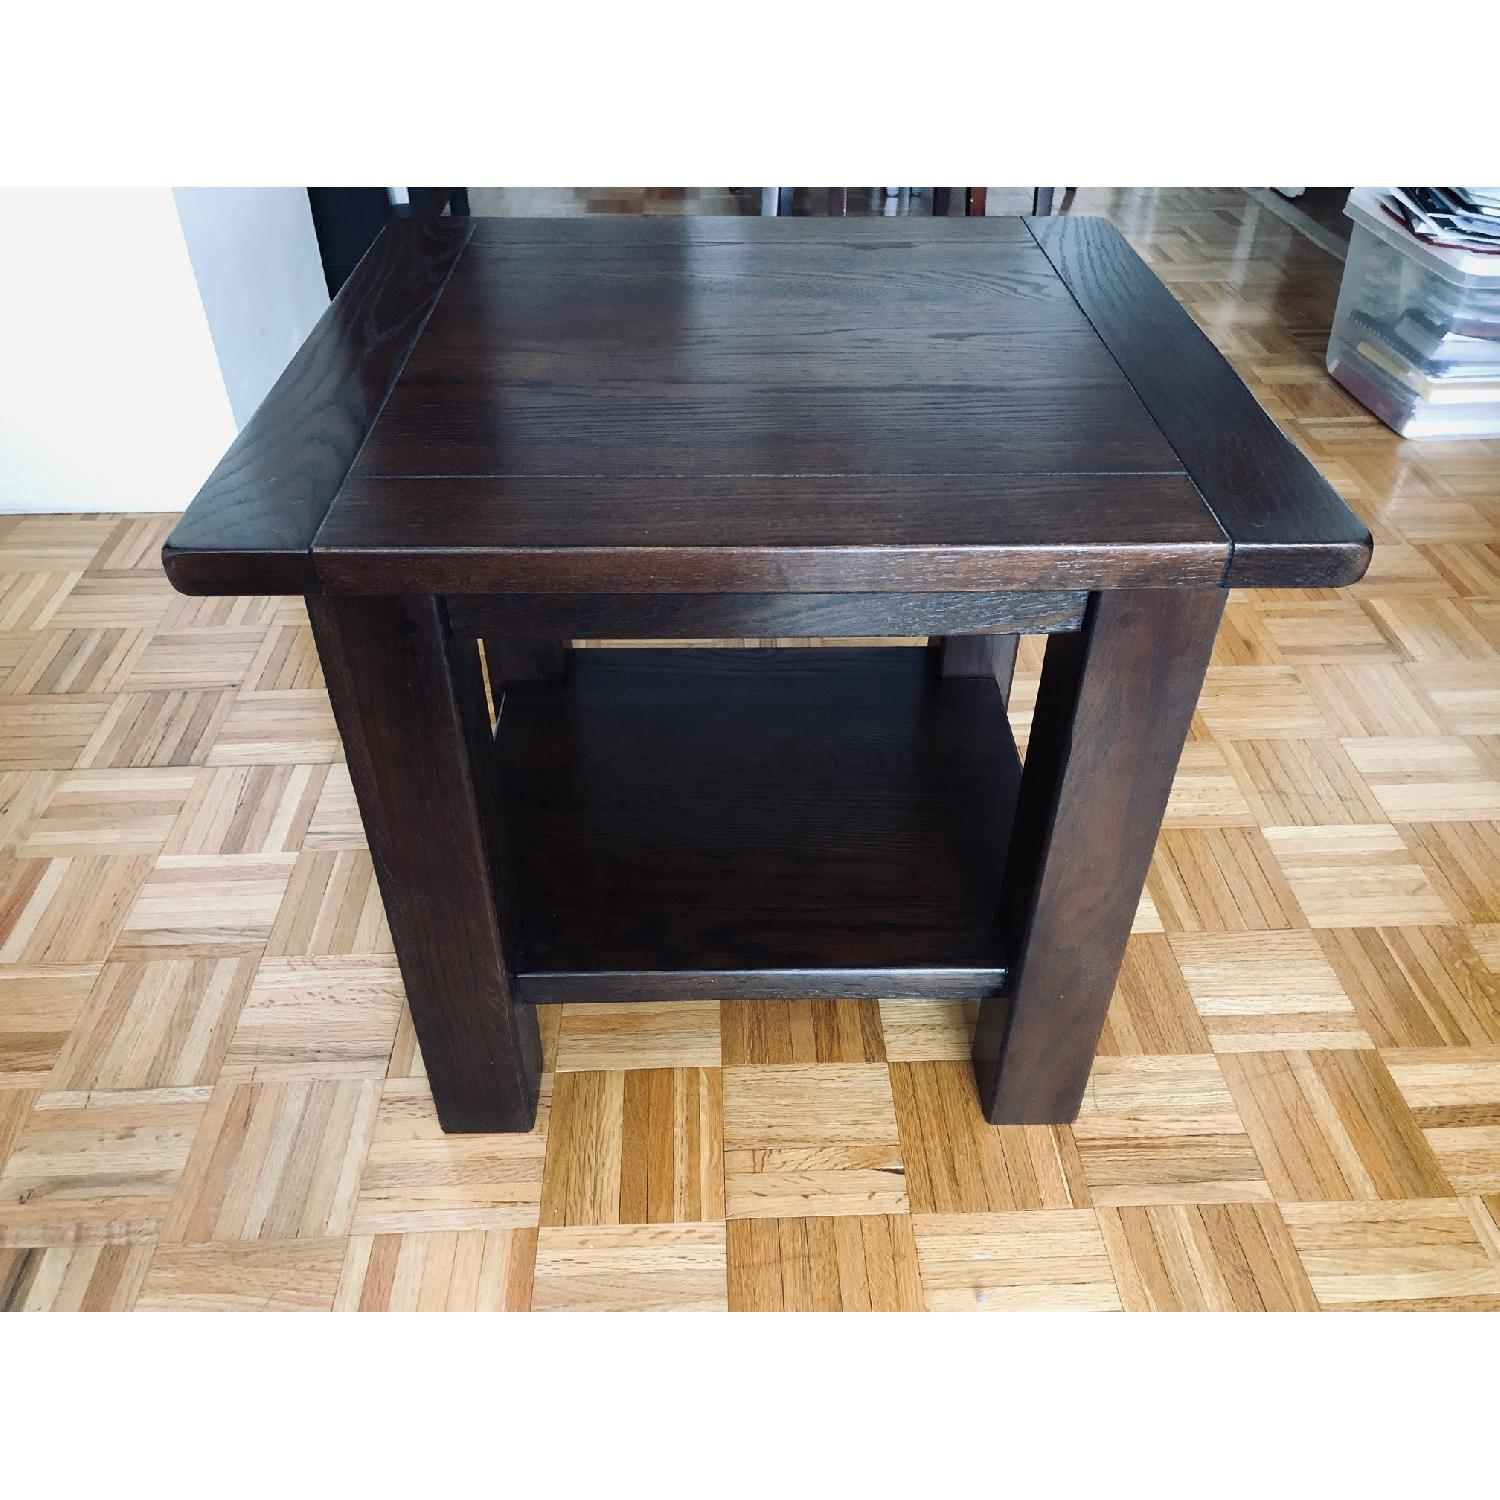 Pottery Barn Benchwright Cube Side Tables - image-3